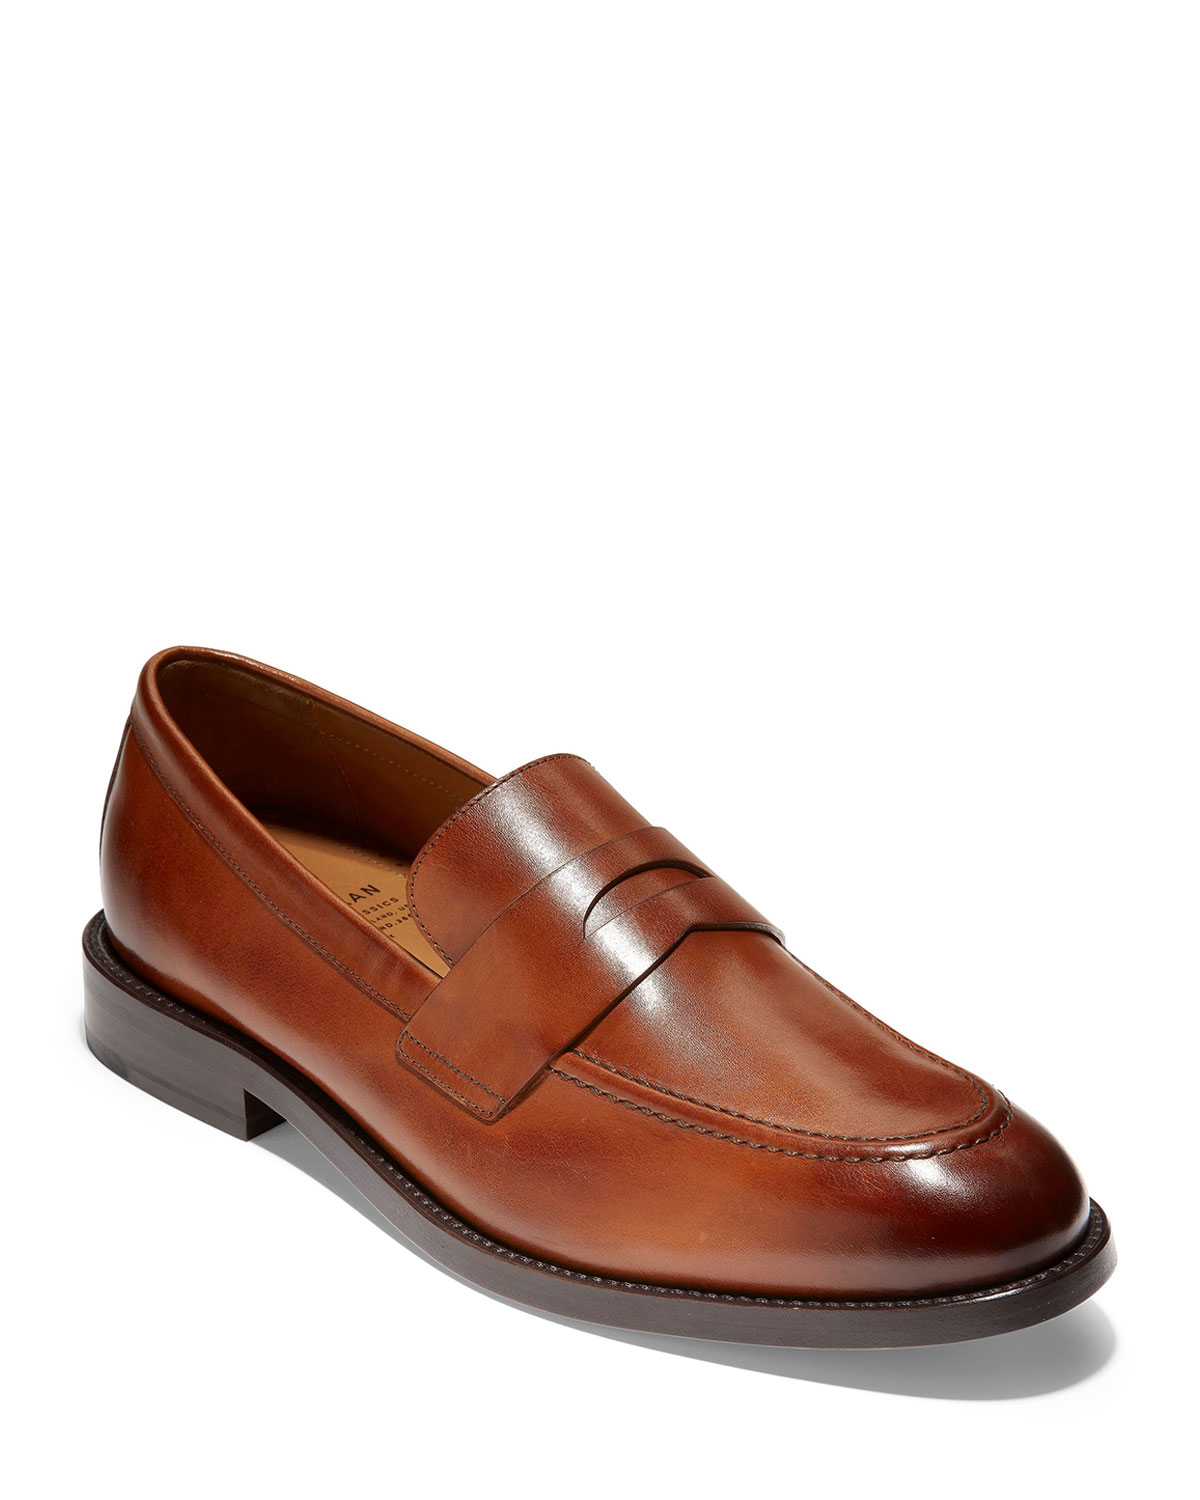 Kneeland Grand Leather Penny Loafers